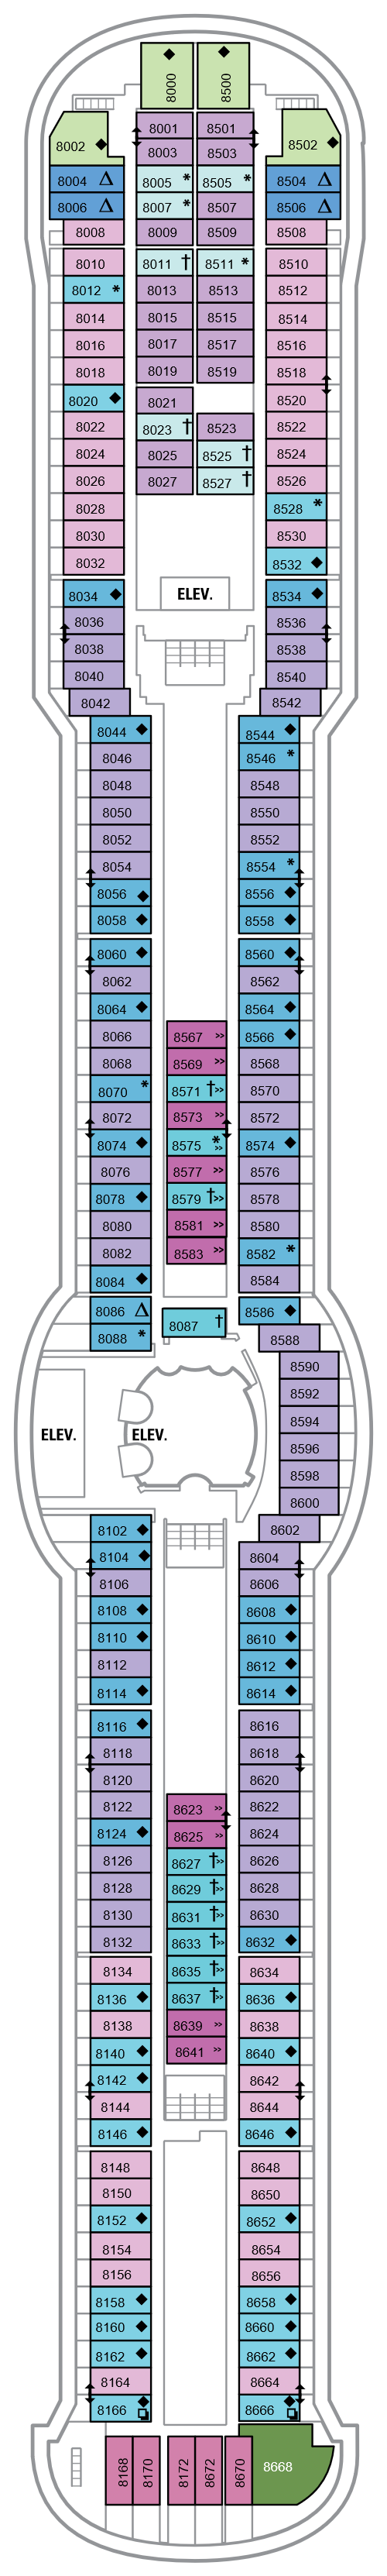 Jewel Of The Seas Deck 8 layout